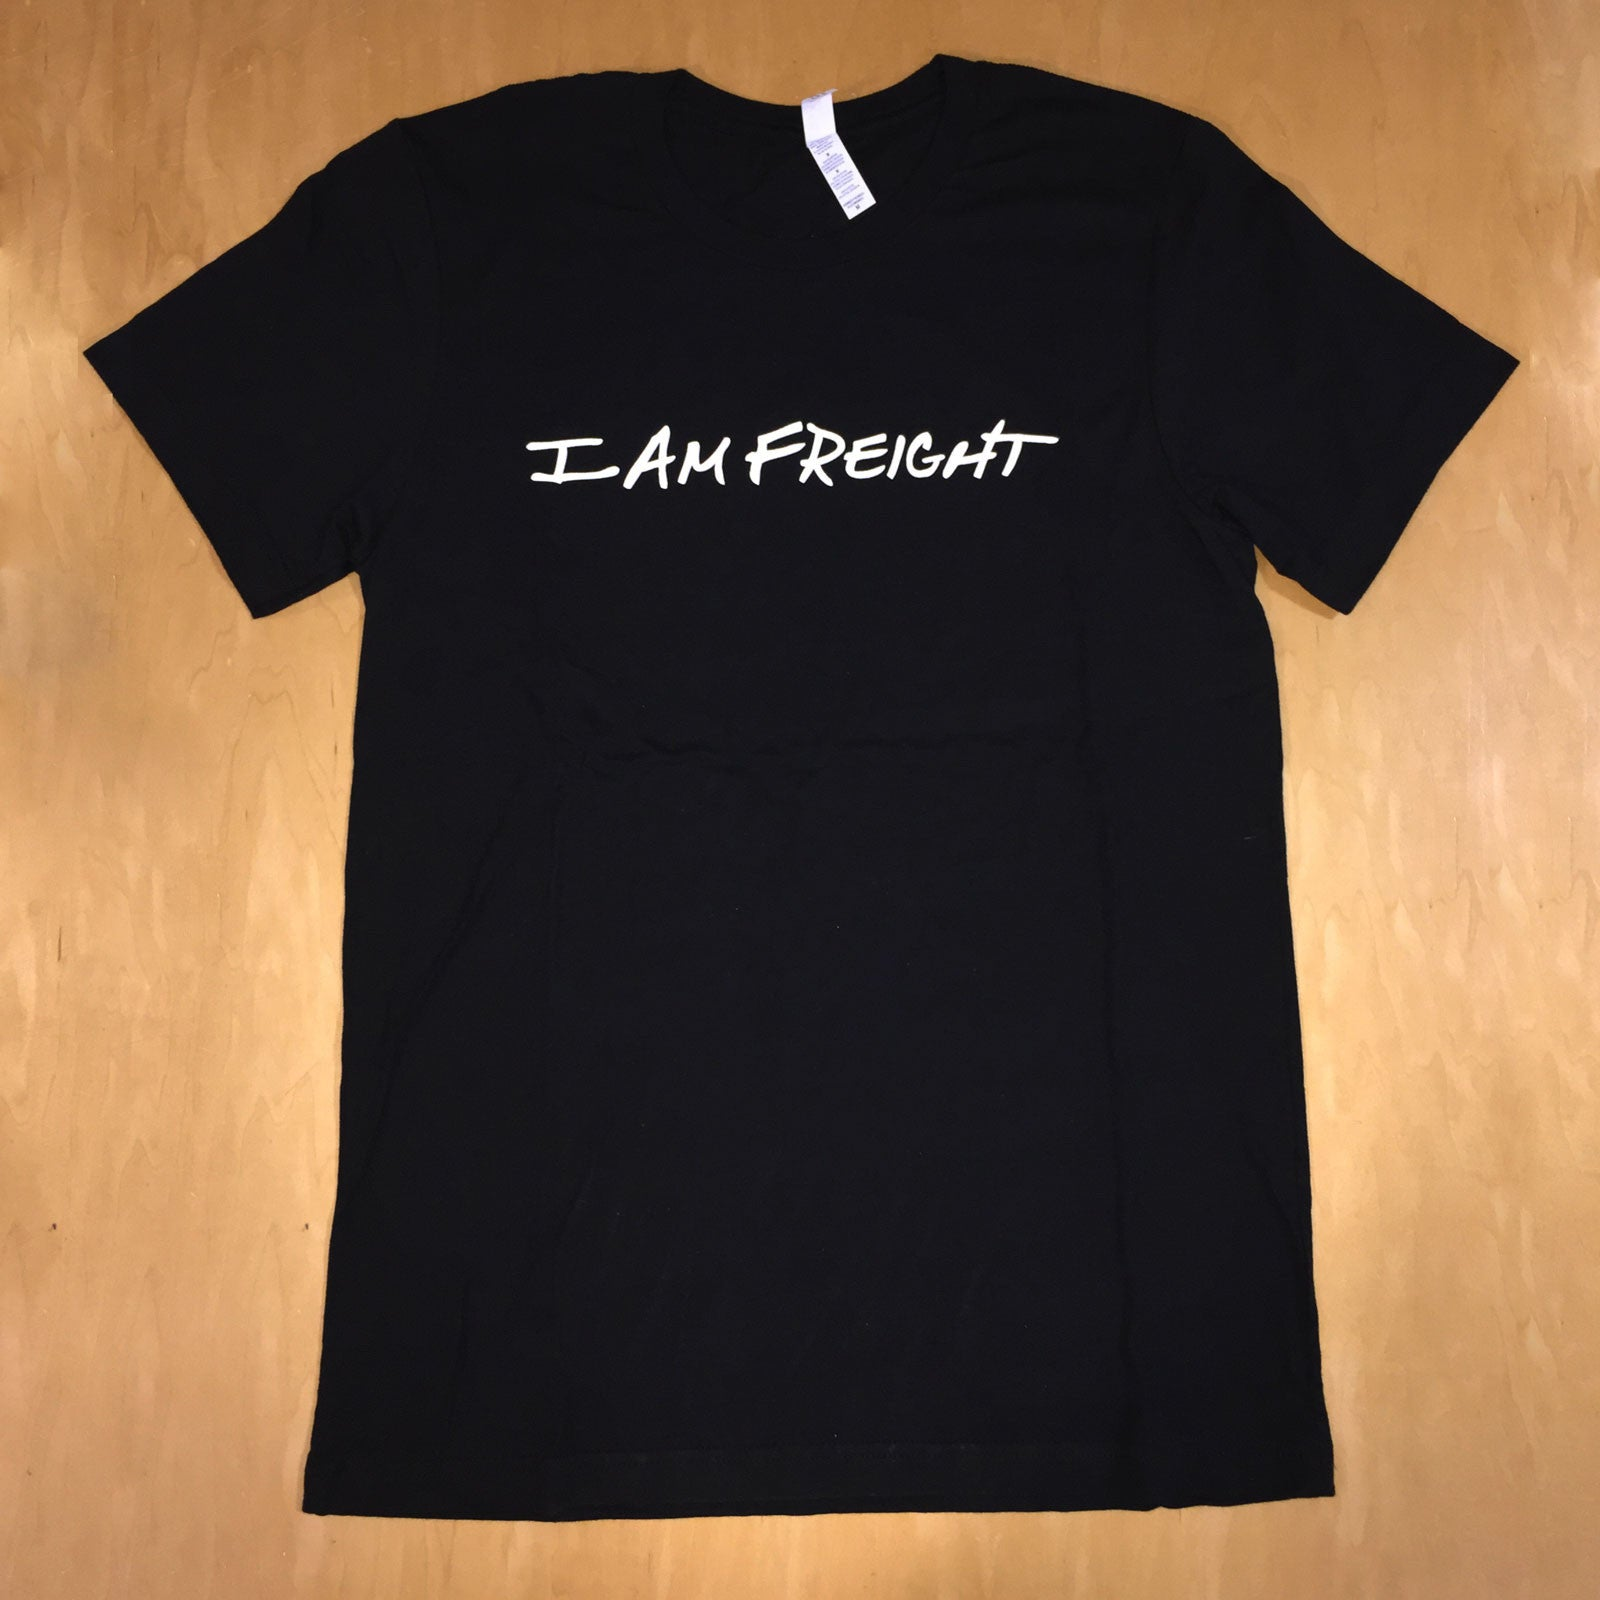 I Am Freight T-Shirt